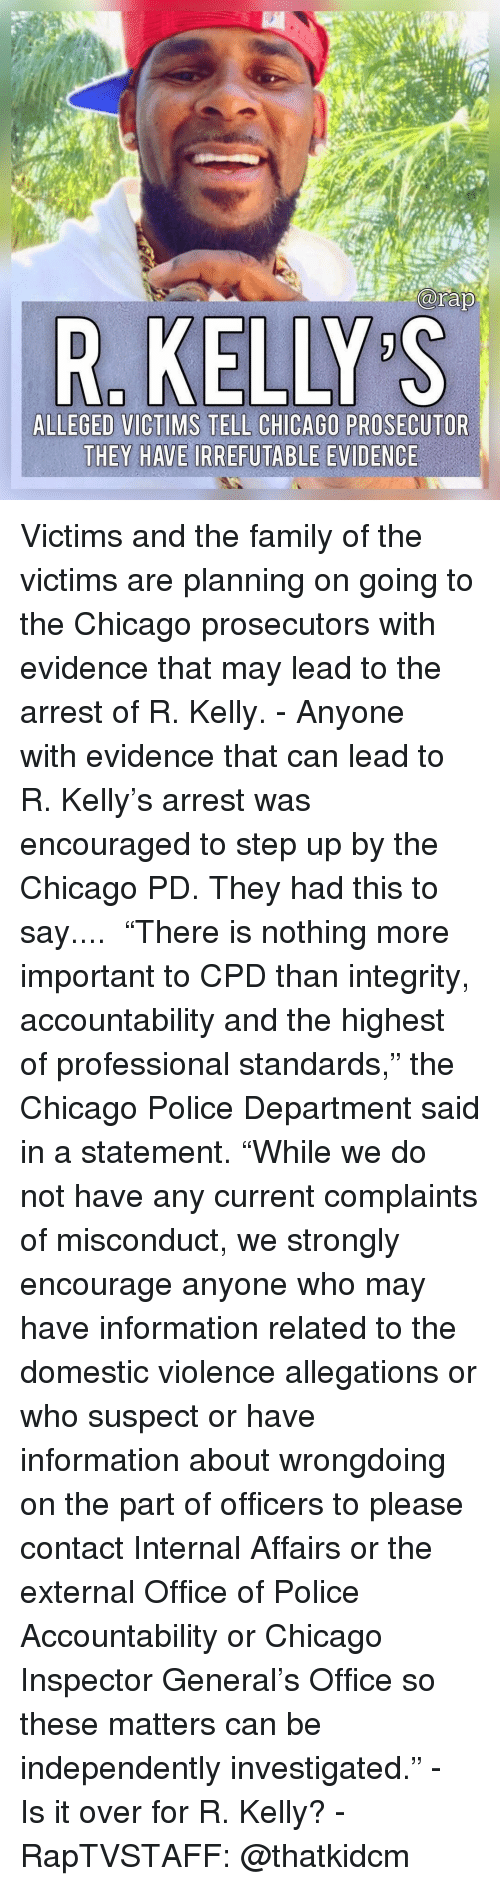 "accountability: R. KELLY S  ALLEGED VICTIMS TELL CHICAGO PROSECUTOR  THEY HAVE IRREFUTABLE EVIDENCE Victims and the family of the victims are planning on going to the Chicago prosecutors with evidence that may lead to the arrest of R. Kelly.⁣ -⁣ Anyone with evidence that can lead to R. Kelly's arrest was encouraged to step up by the Chicago PD. They had this to say....⁣ ⁣ ""There is nothing more important to CPD than integrity, accountability and the highest of professional standards,"" the Chicago Police Department said in a statement. ""While we do not have any current complaints of misconduct, we strongly encourage anyone who may have information related to the domestic violence allegations or who suspect or have information about wrongdoing on the part of officers to please contact Internal Affairs or the external Office of Police Accountability or Chicago Inspector General's Office so these matters can be independently investigated.""⁣ -⁣ Is it over for R. Kelly?⁣ -⁣ RapTVSTAFF: @thatkidcm⁣"